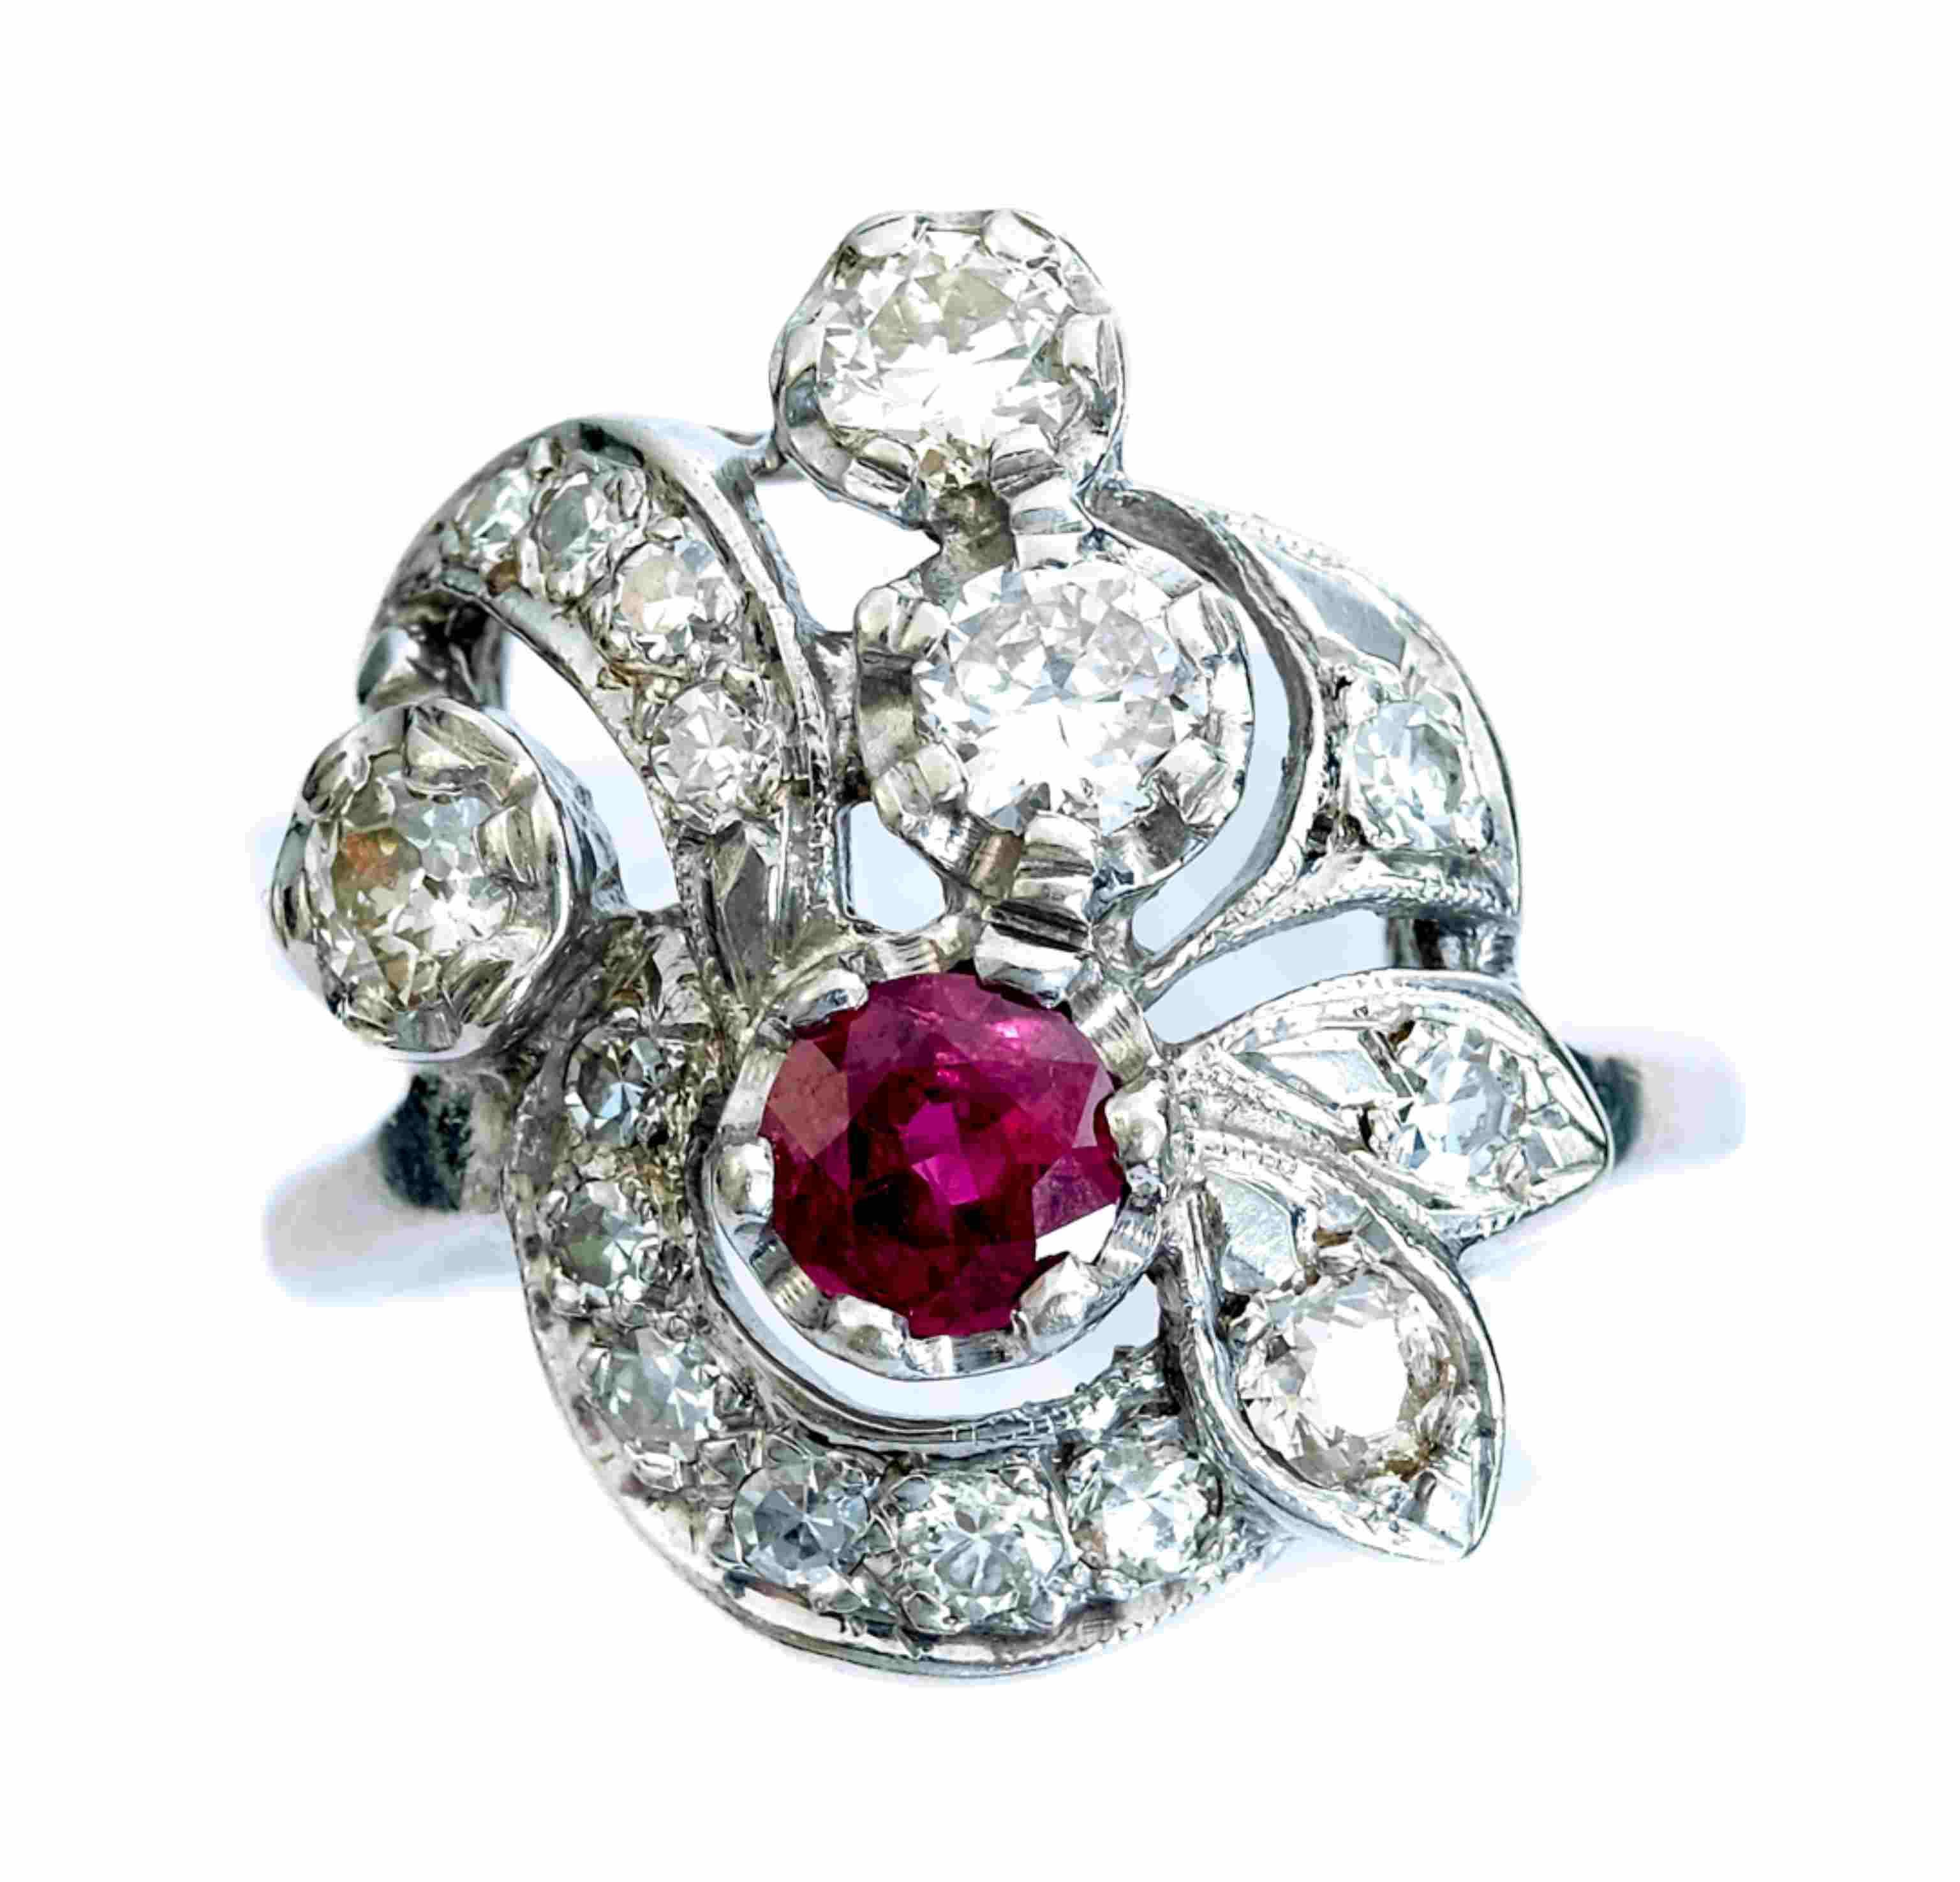 Vintage 14k White Gold Diamond & Ruby Ring, Size 8